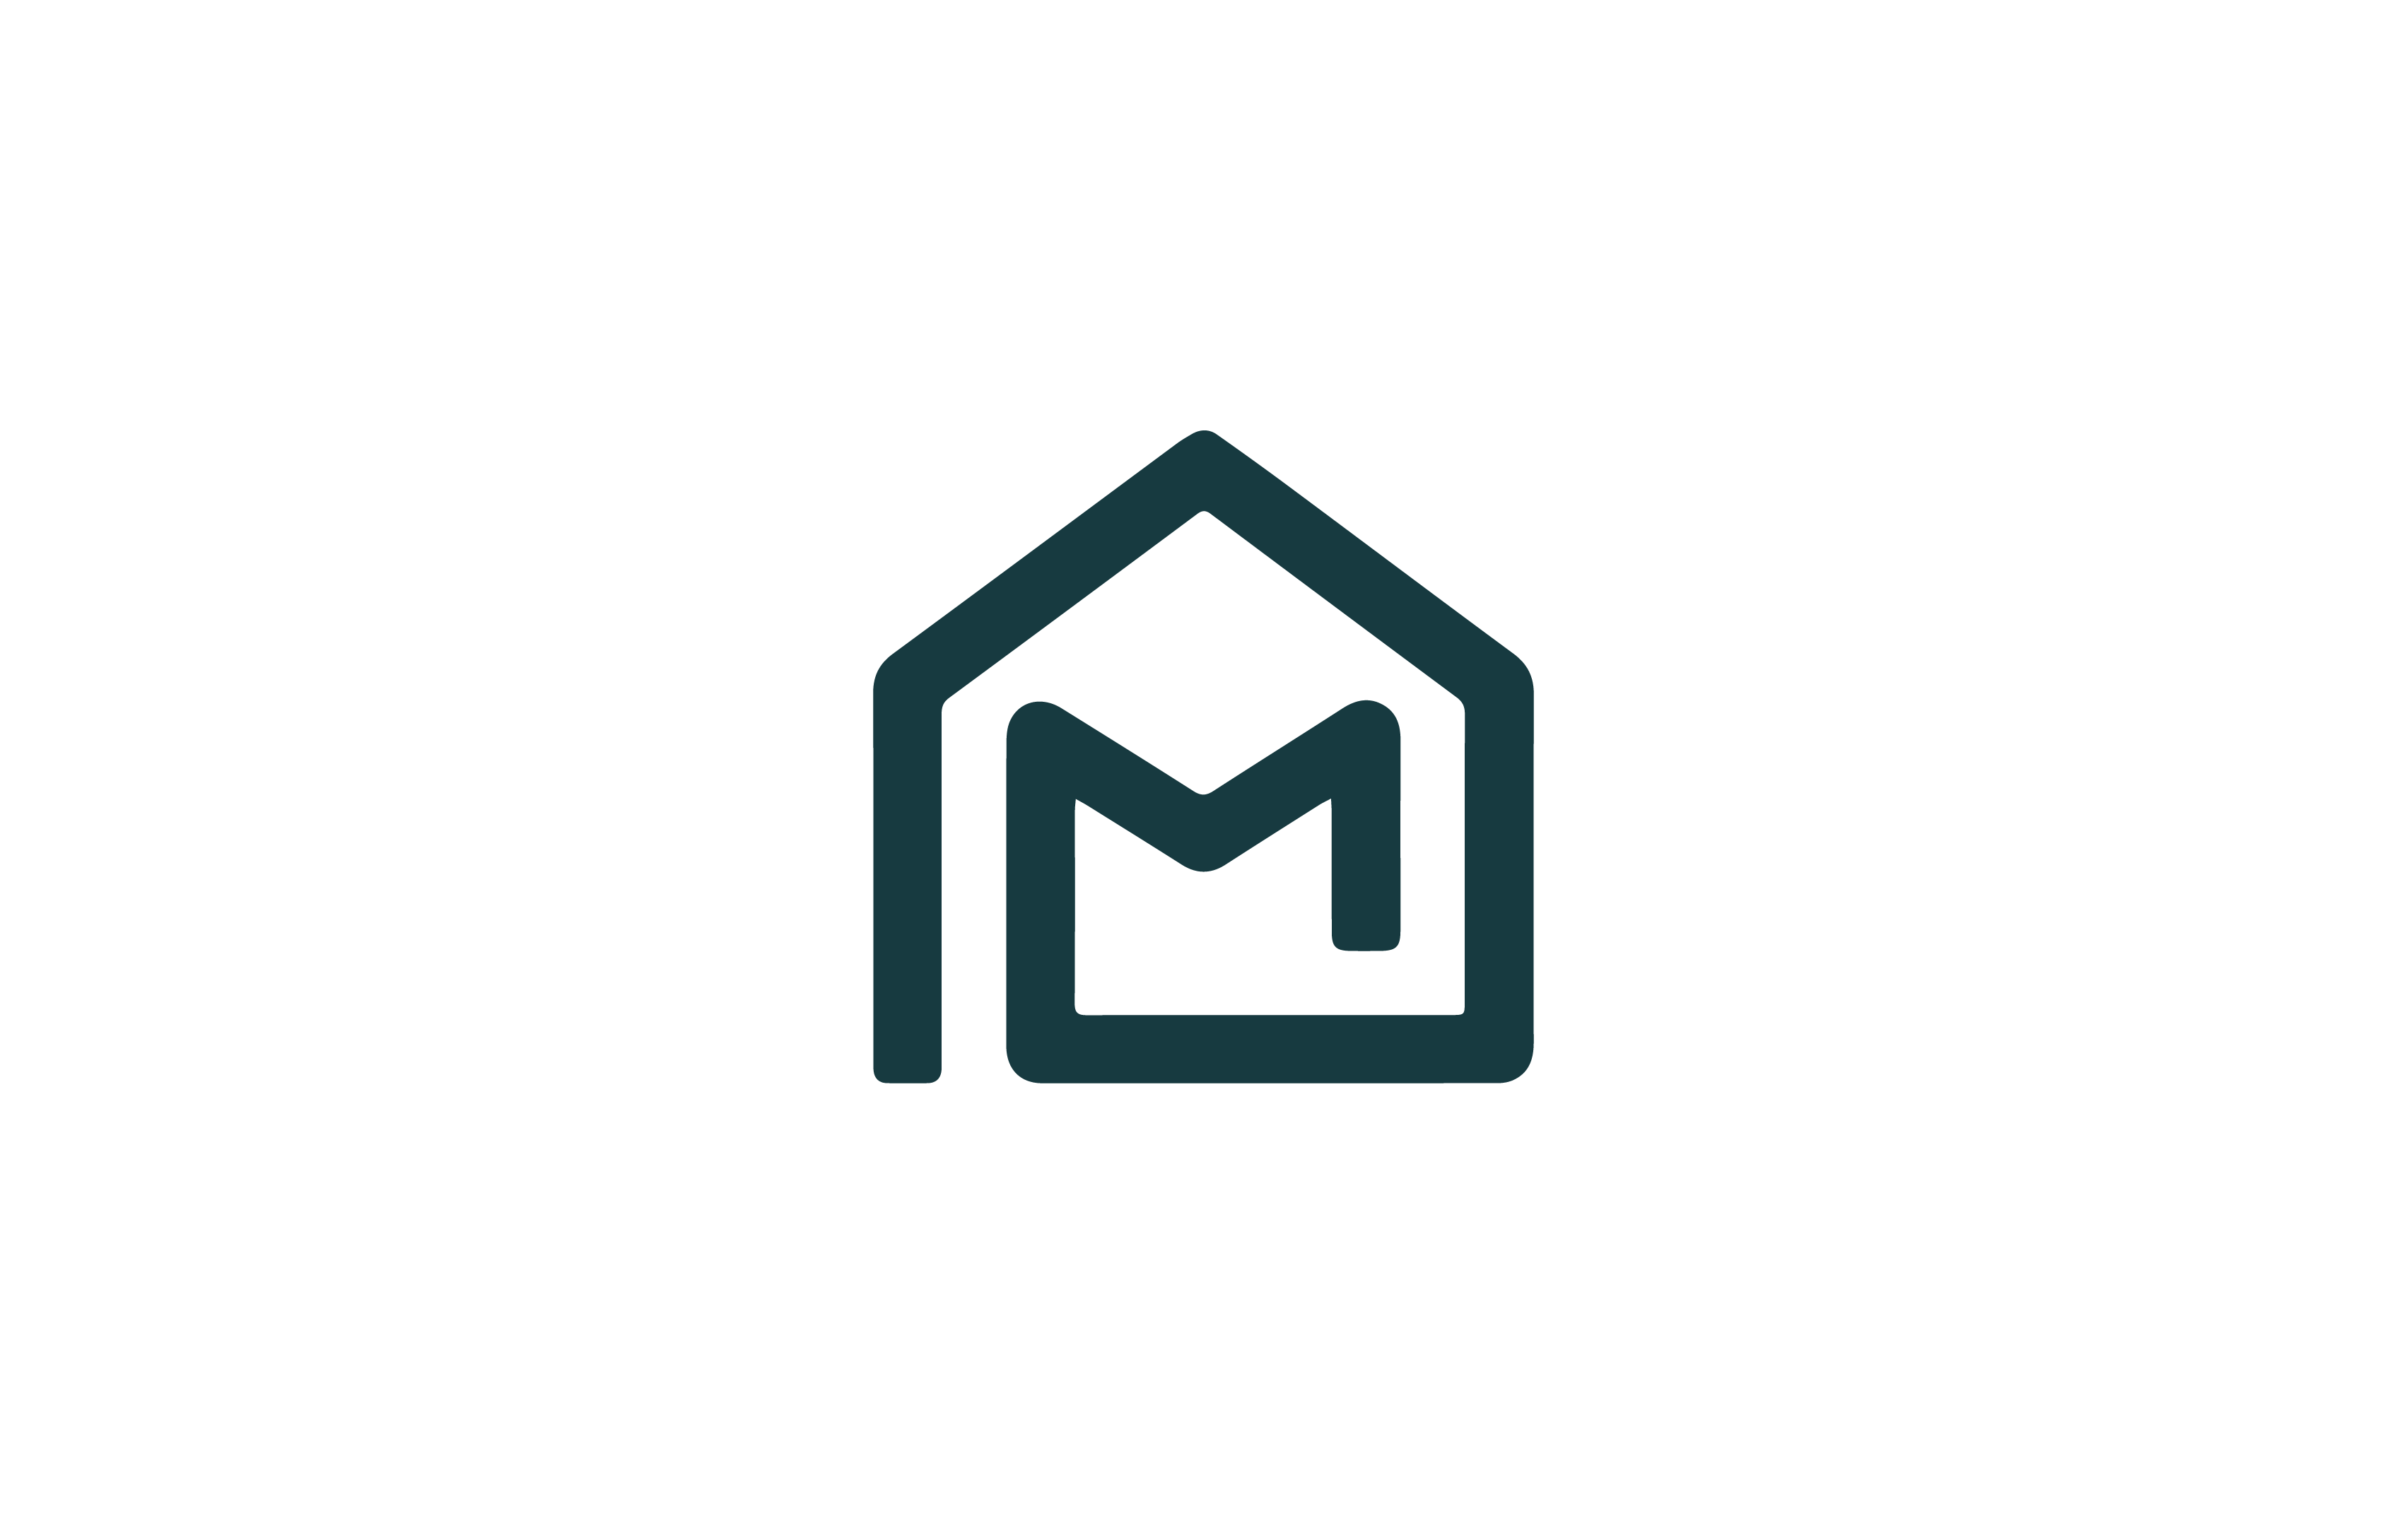 mcgrory homes master logo design